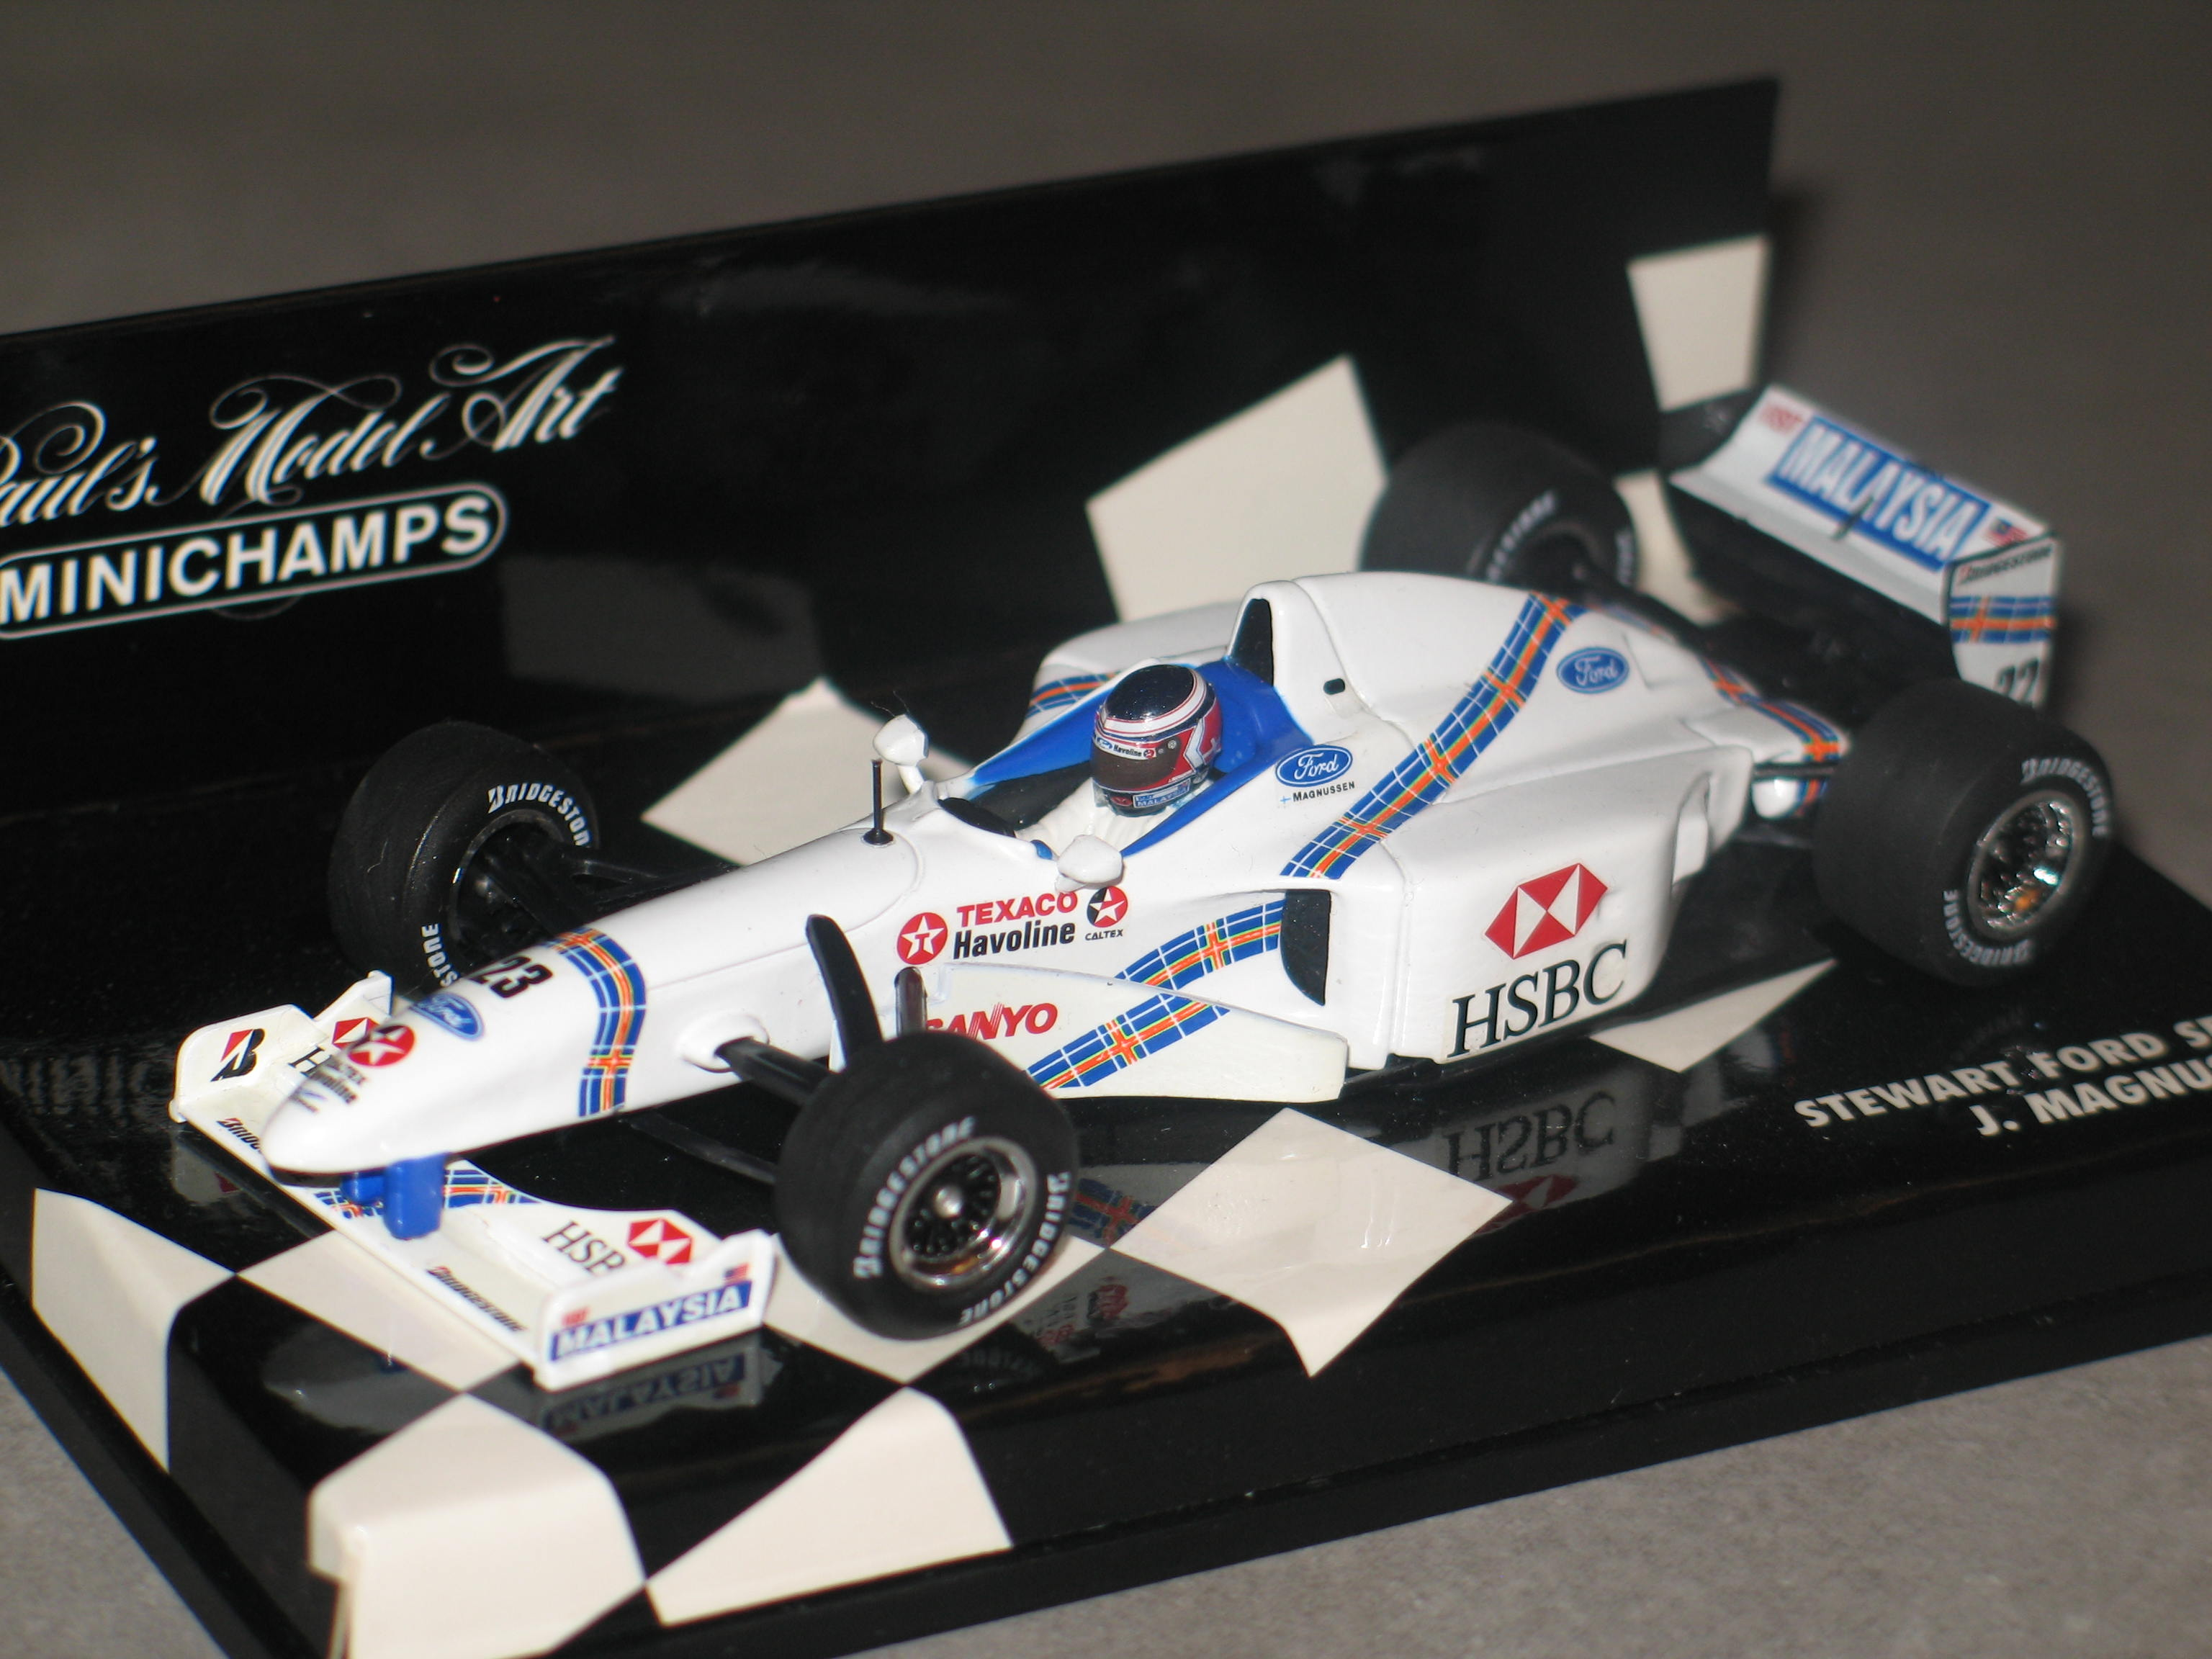 STEWART FORD SF1 N°23 1997 MINICHAMPS 1/43°